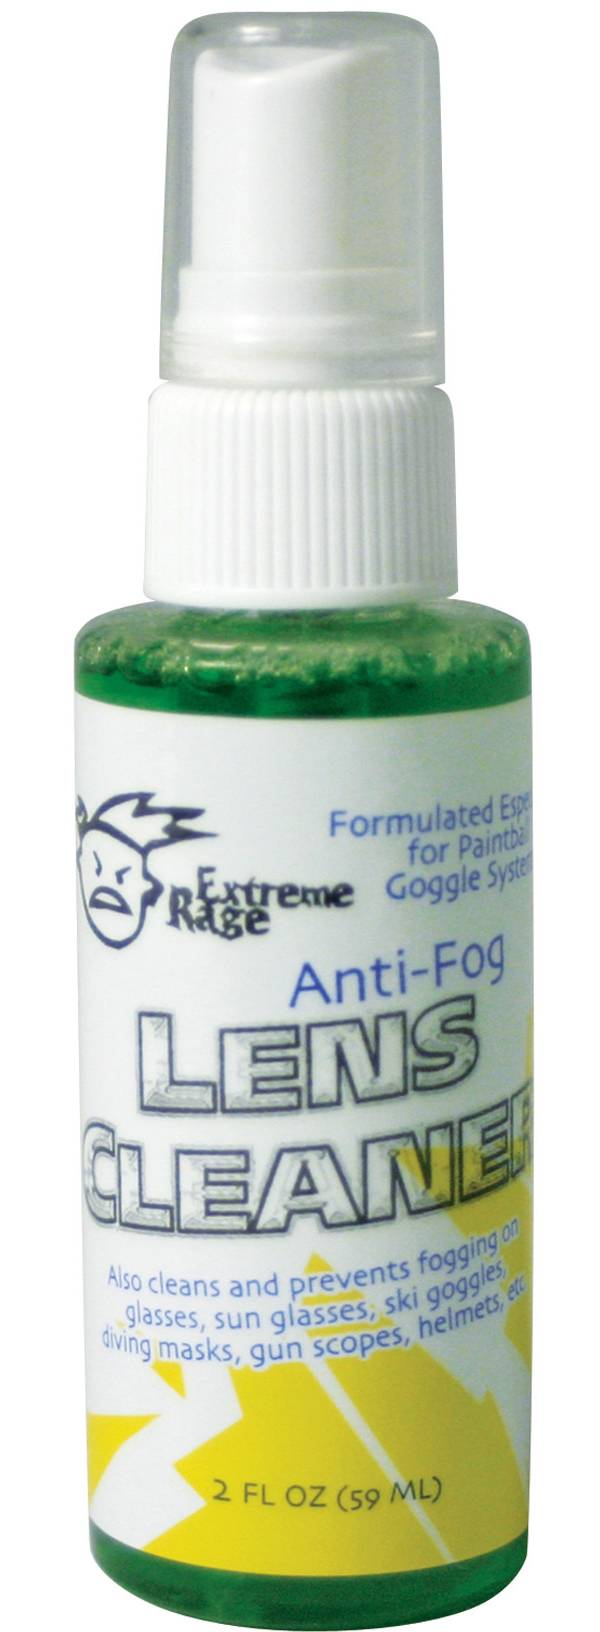 Extreme Rage 2 oz. Lens Cleaner product image